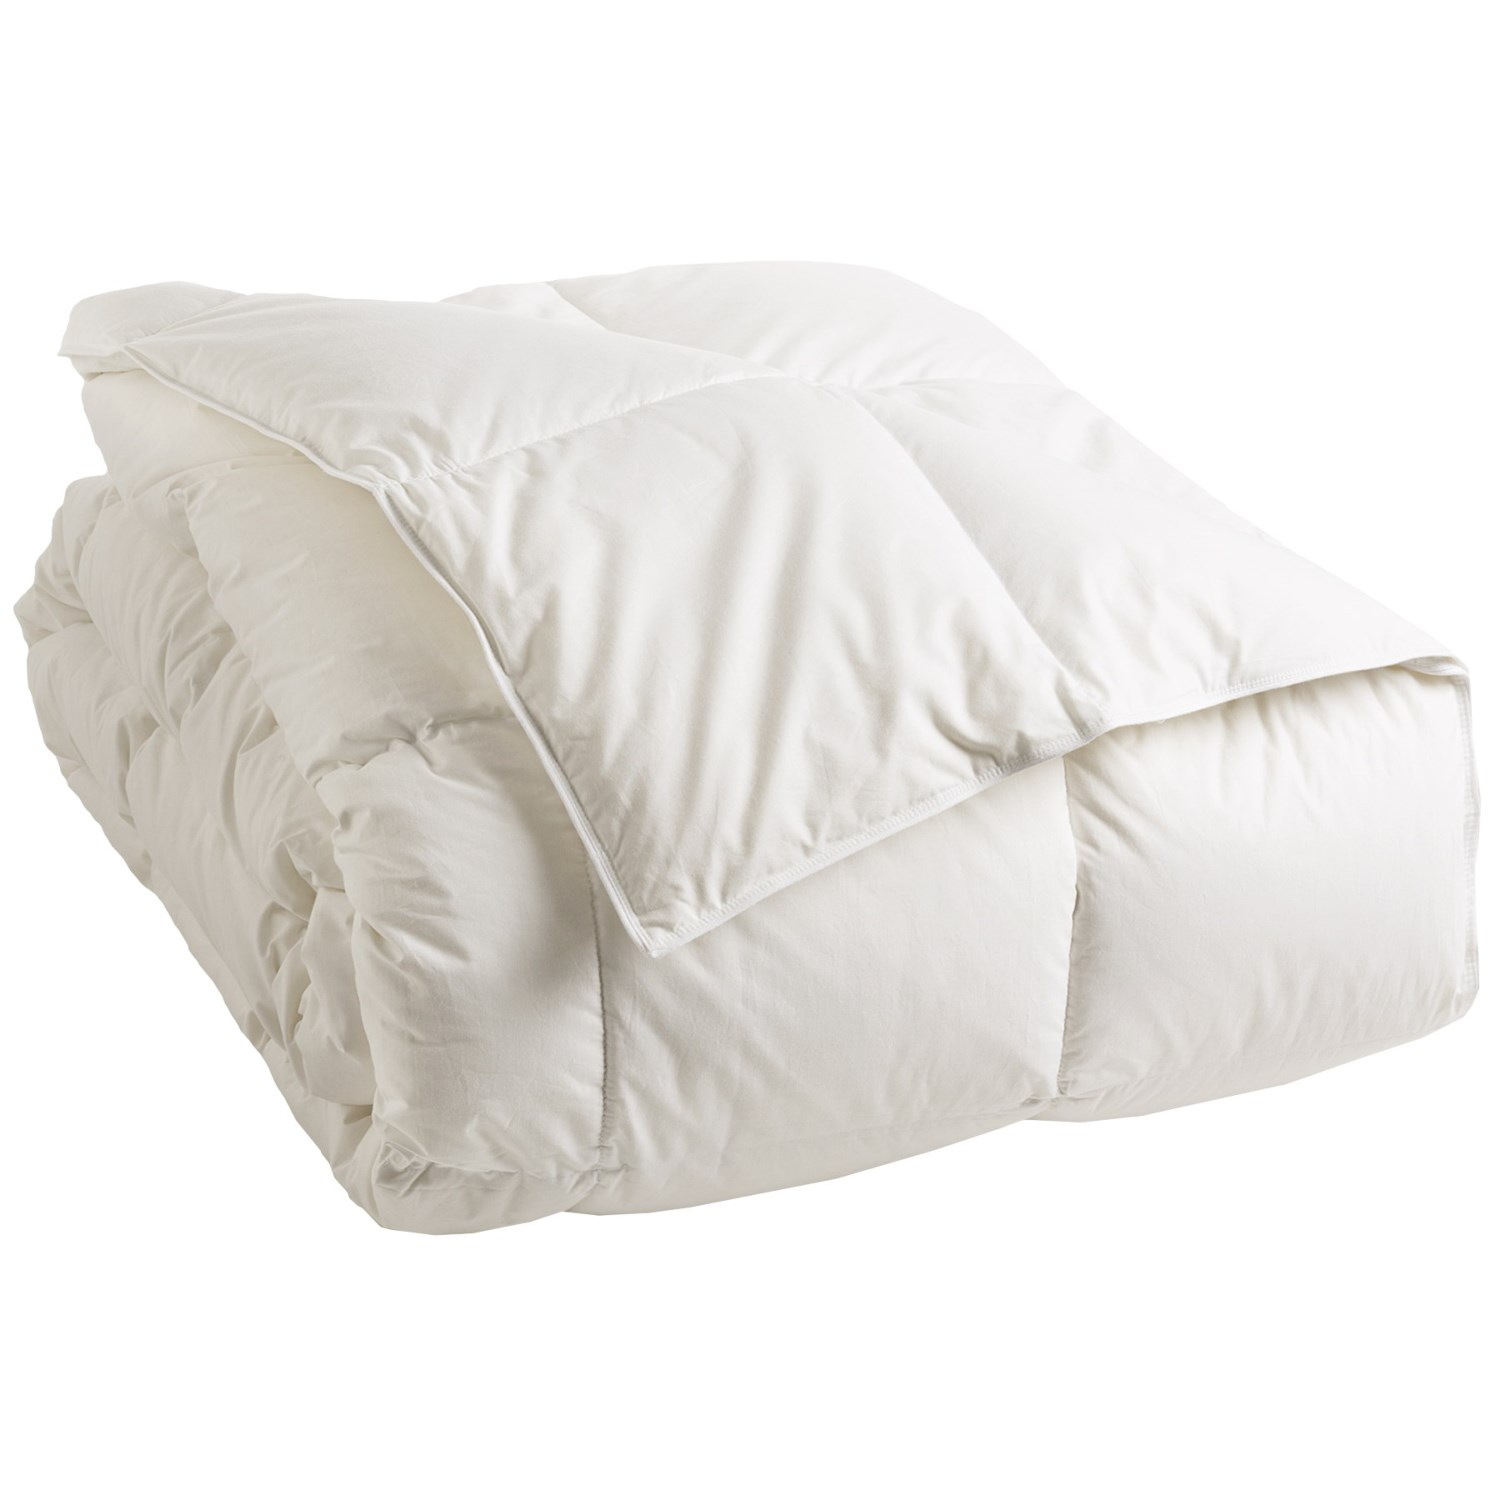 Outdoor Down Blanket Downtown Summerfield Hungarian White Goose Down Comforter Twin